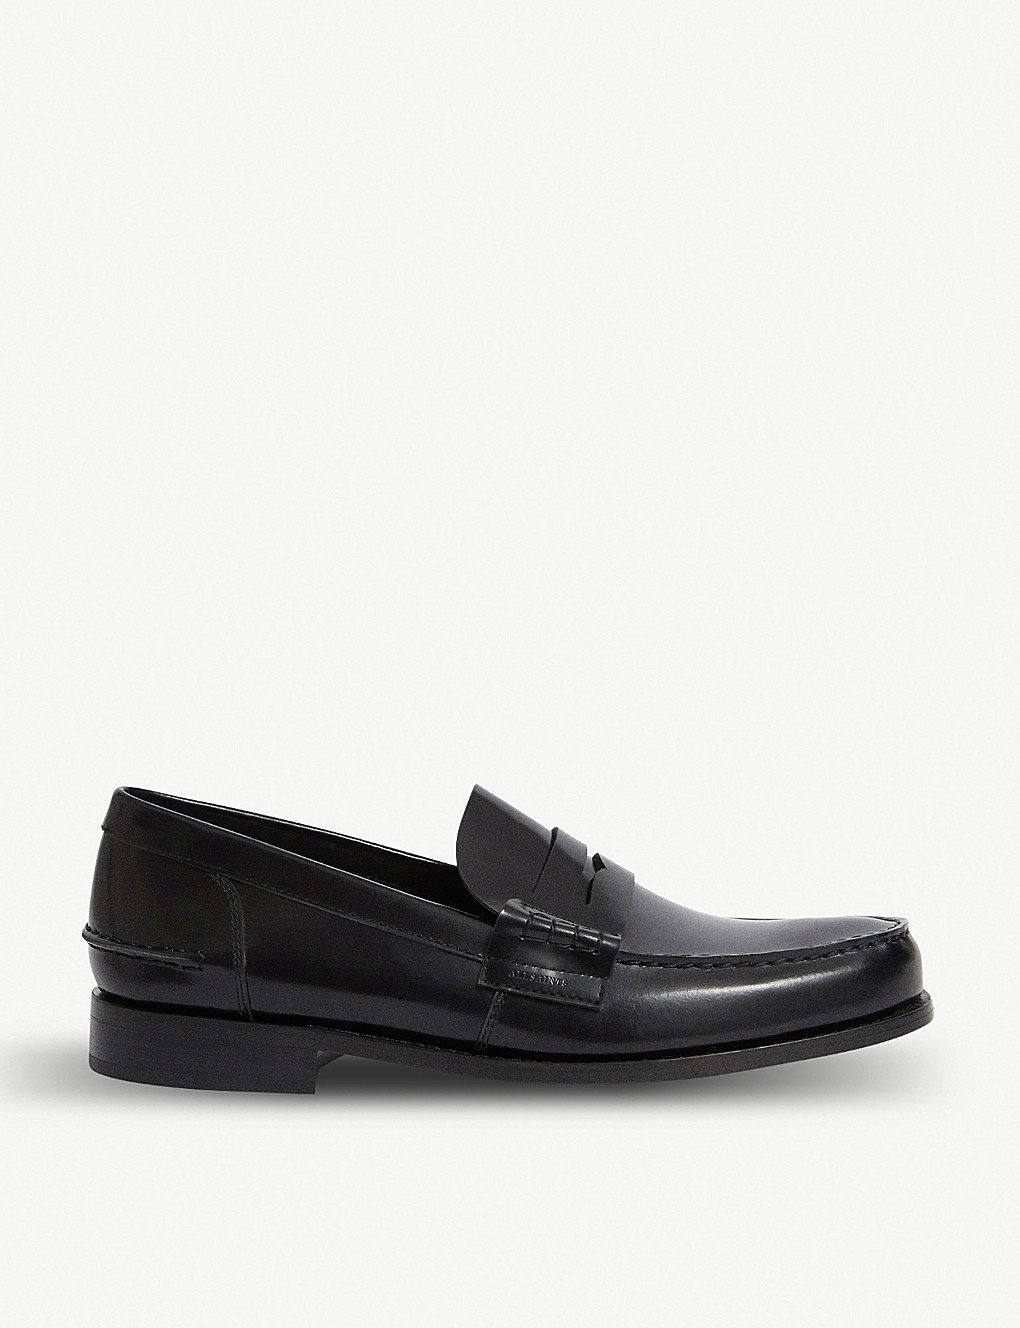 613bc953027 ALLSAINTS Pelhem leather loafers   boys shoes   Leather loafers ...